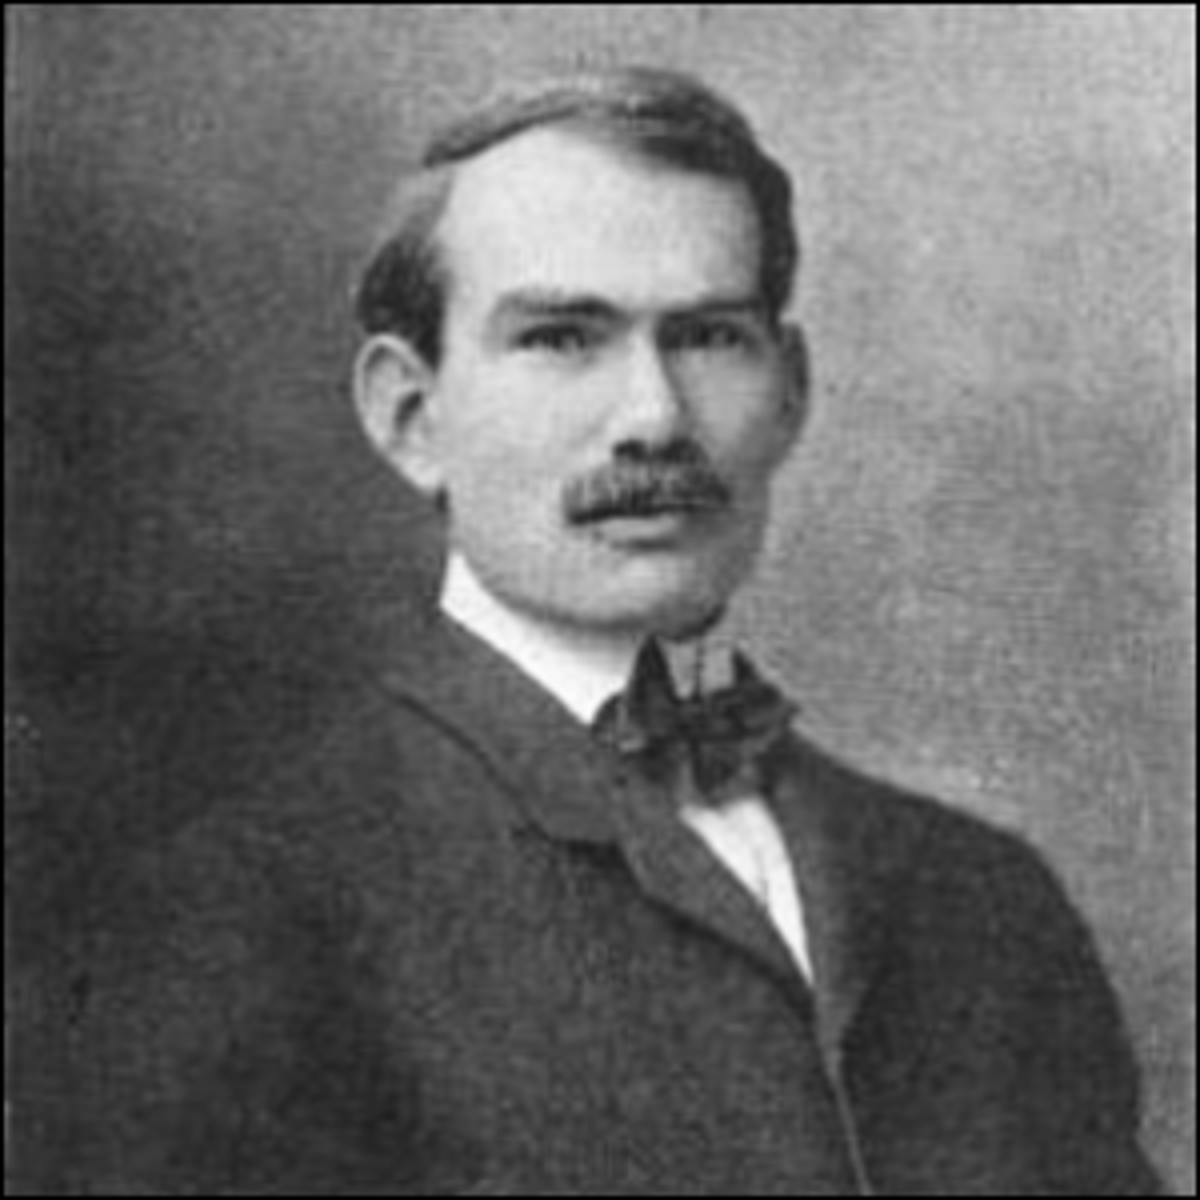 A photo of Lee de Forest, published in the February 1904 issue of The Electrical Age.